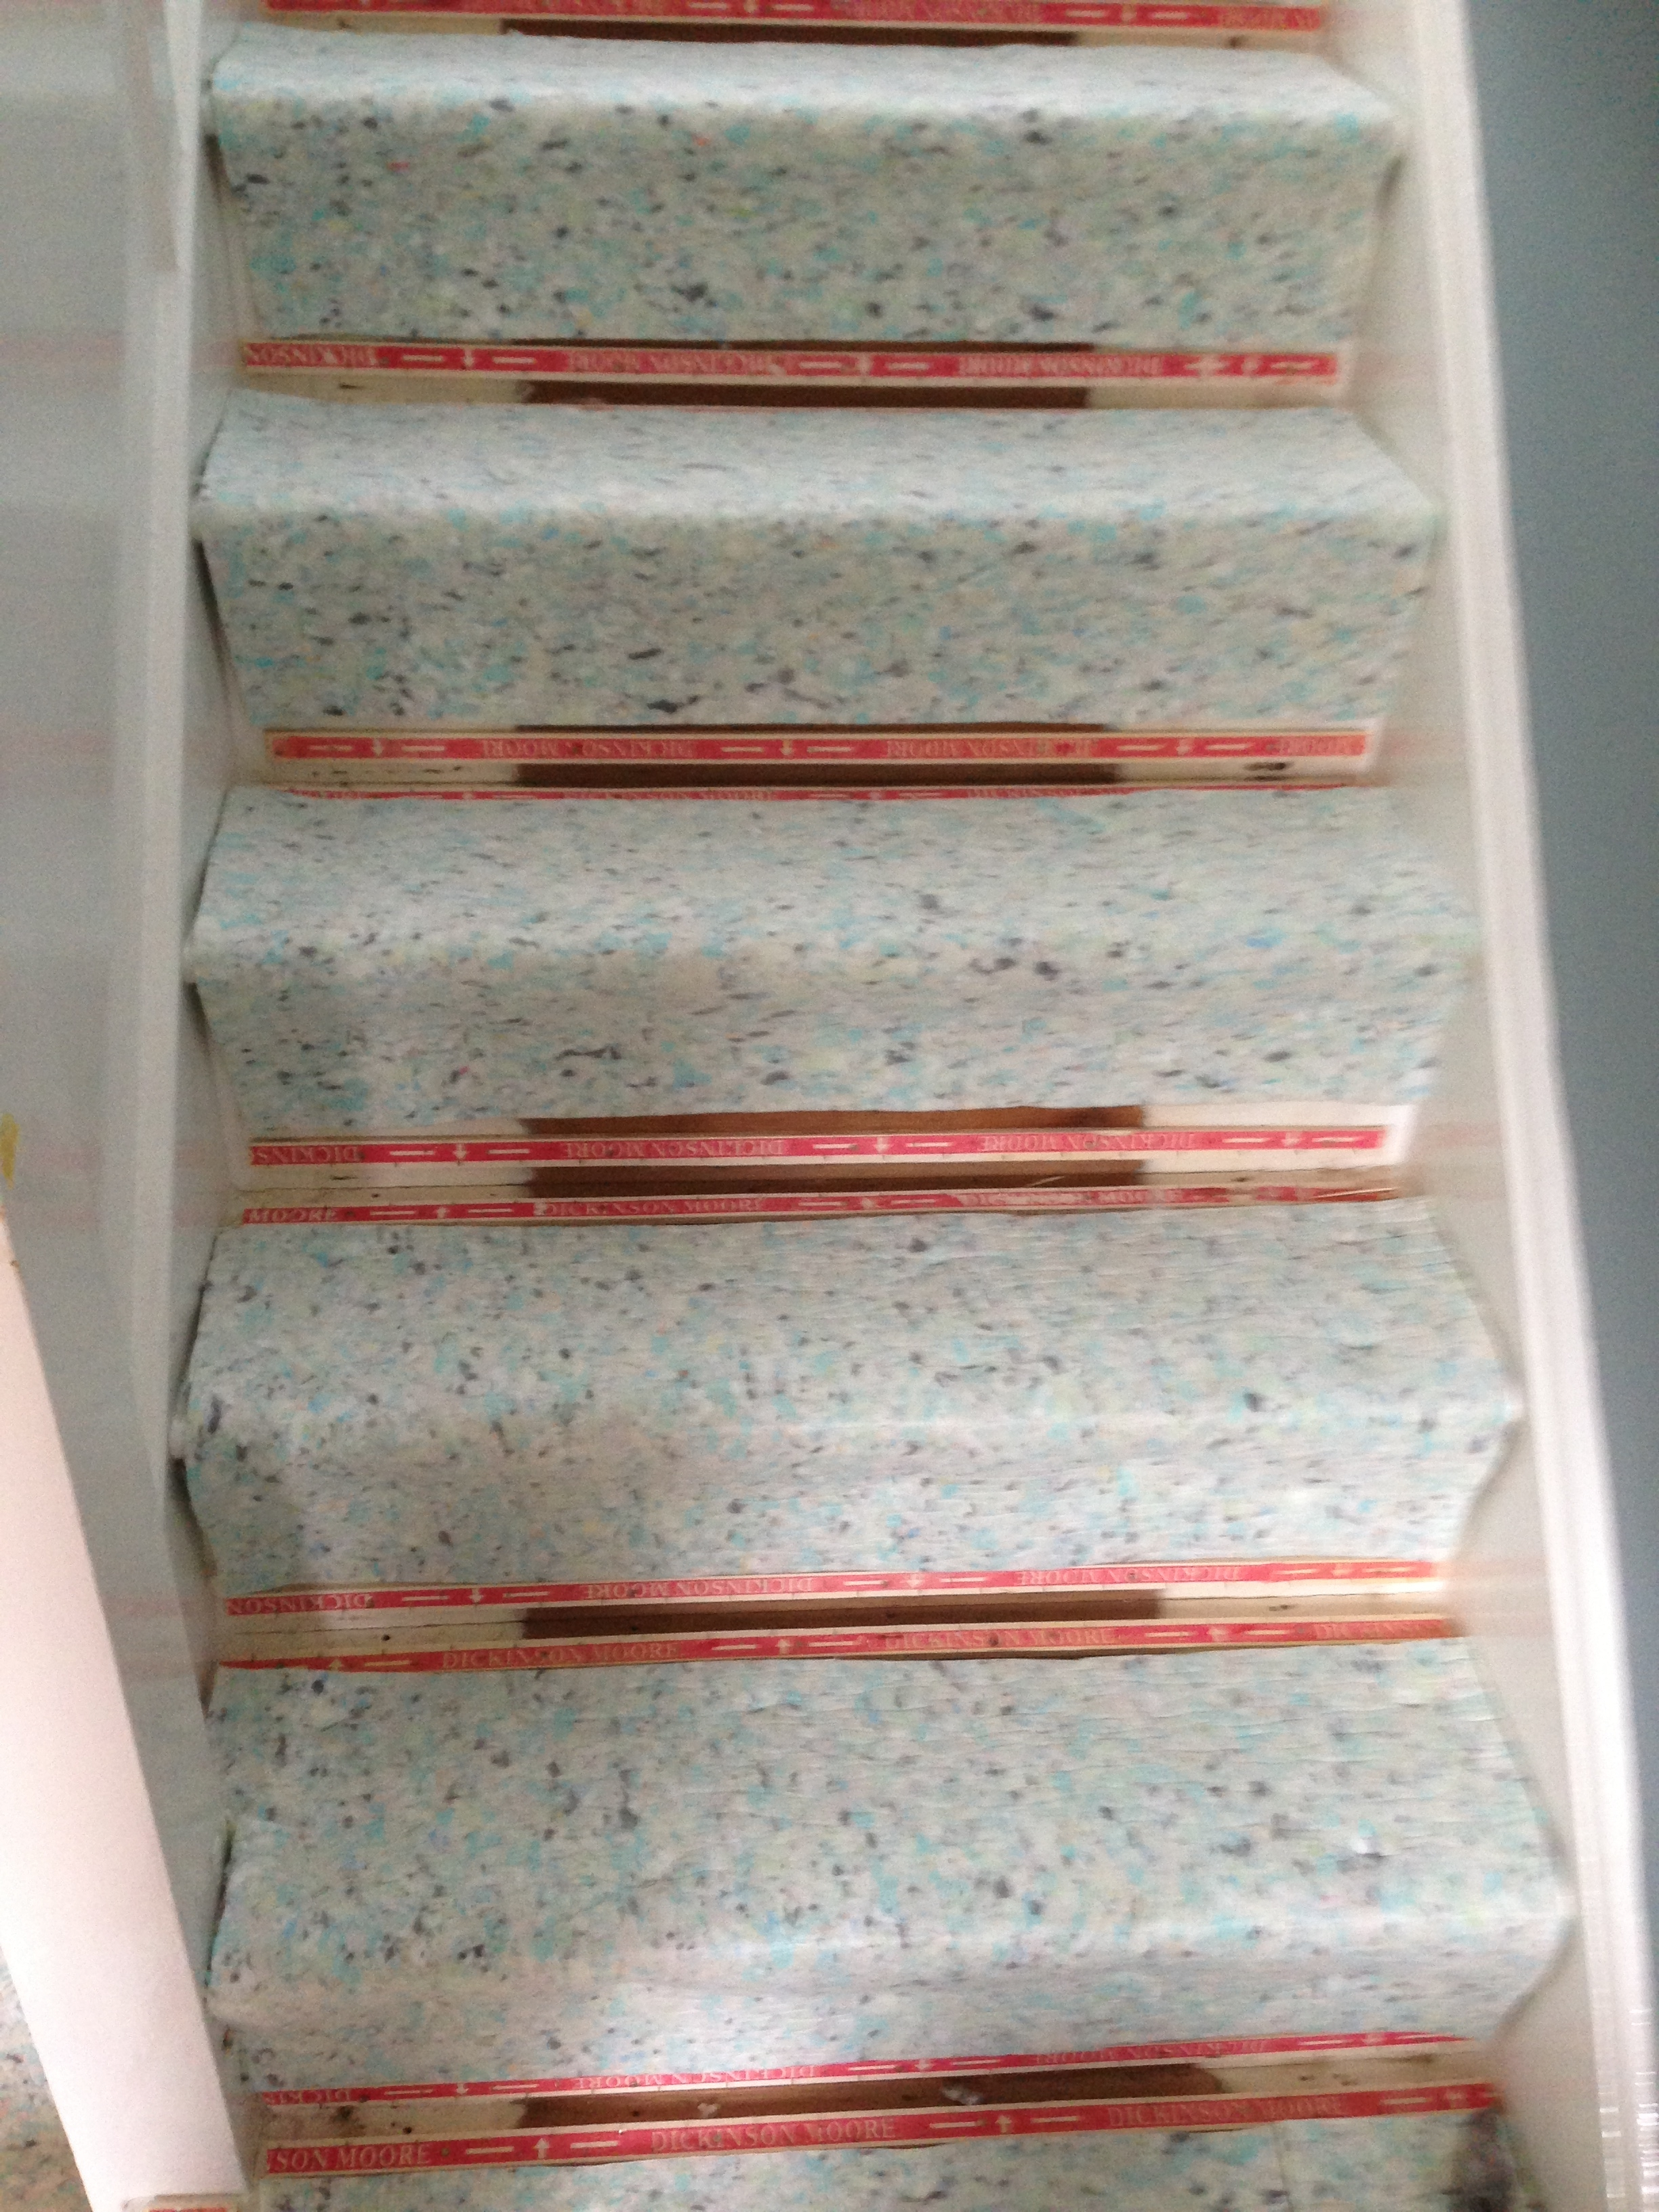 52 Laying Carpet On Stairs Staple Carpet Along Bottom Riser At With Regard To Stair Tread Rug Gripper (View 8 of 15)